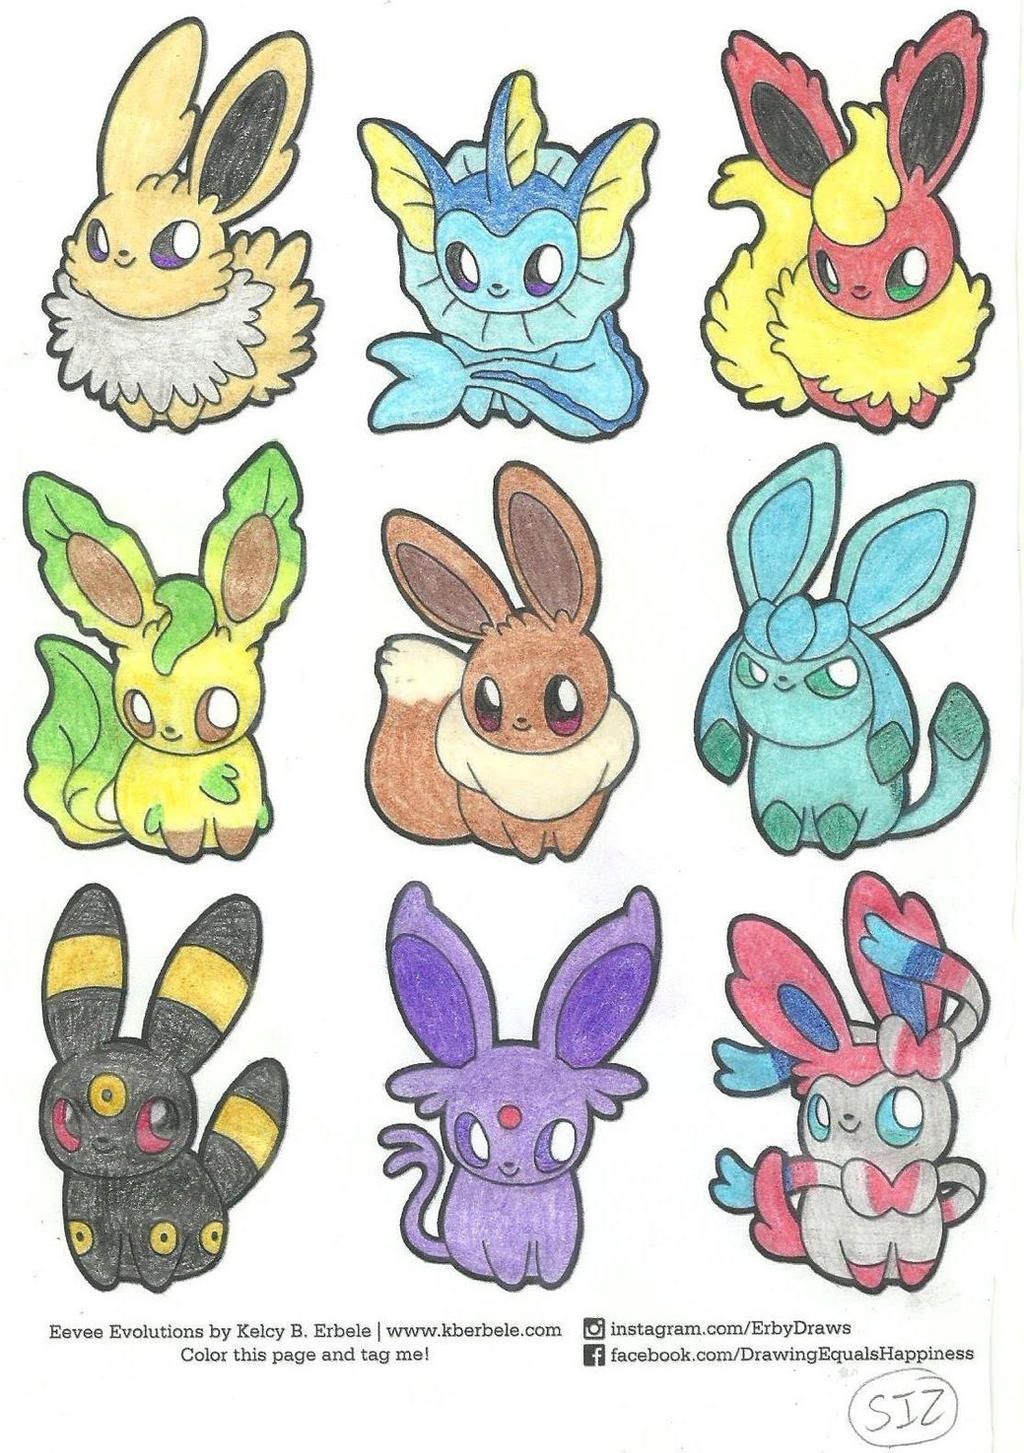 the eeveelutions coloring page 2 by spyrogirl91 on deviantart